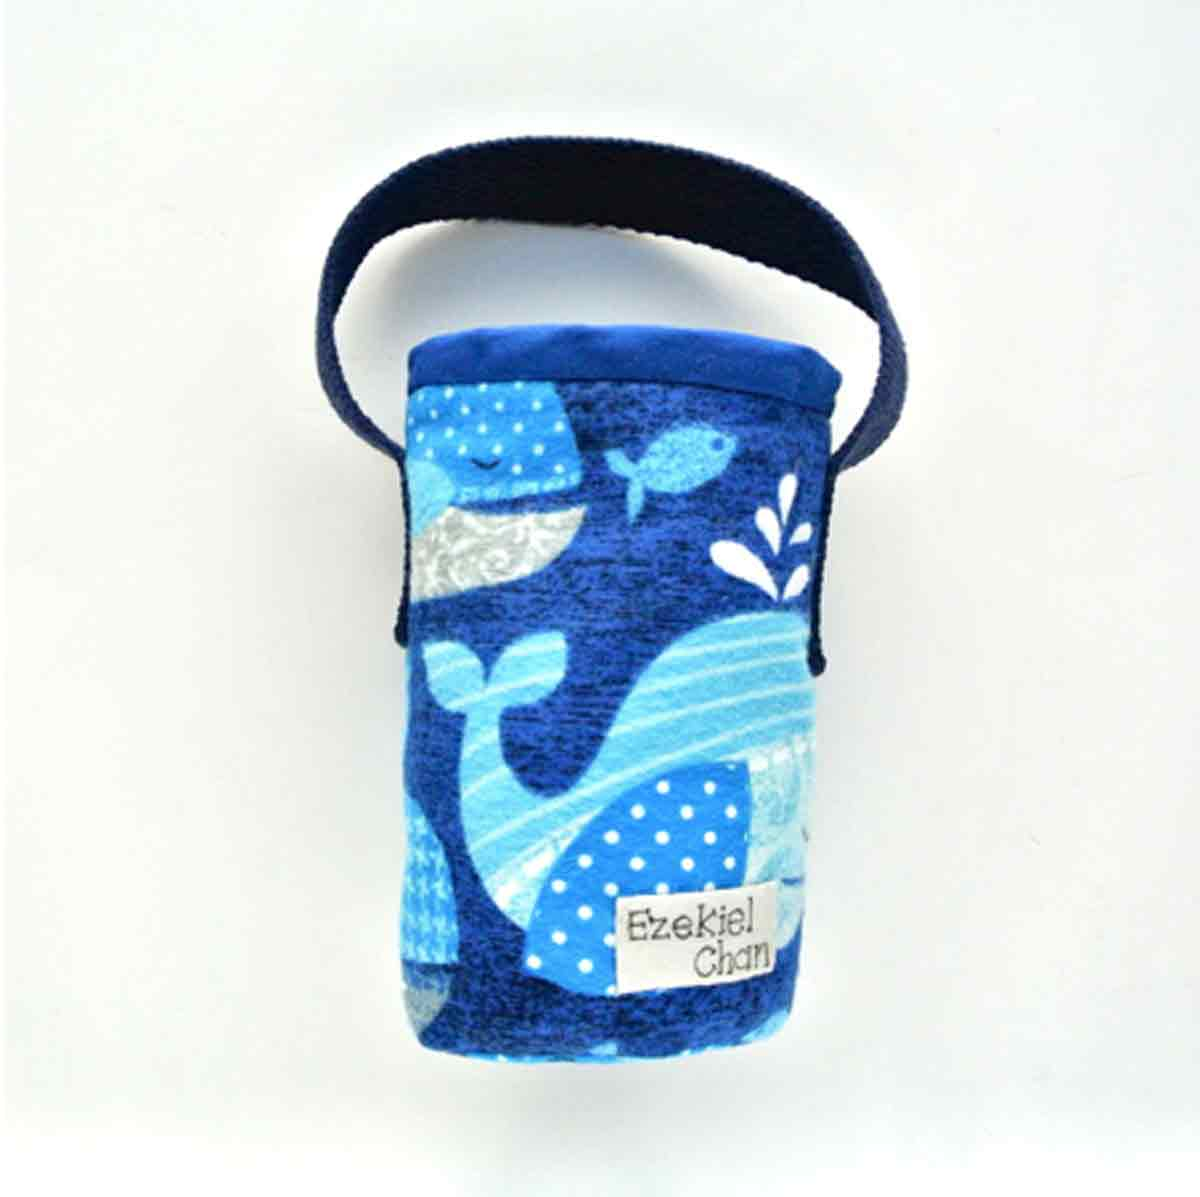 Finished front view of DIY Insulated Water Bottle Holder Bag Carrier with Small Name Tag on Side